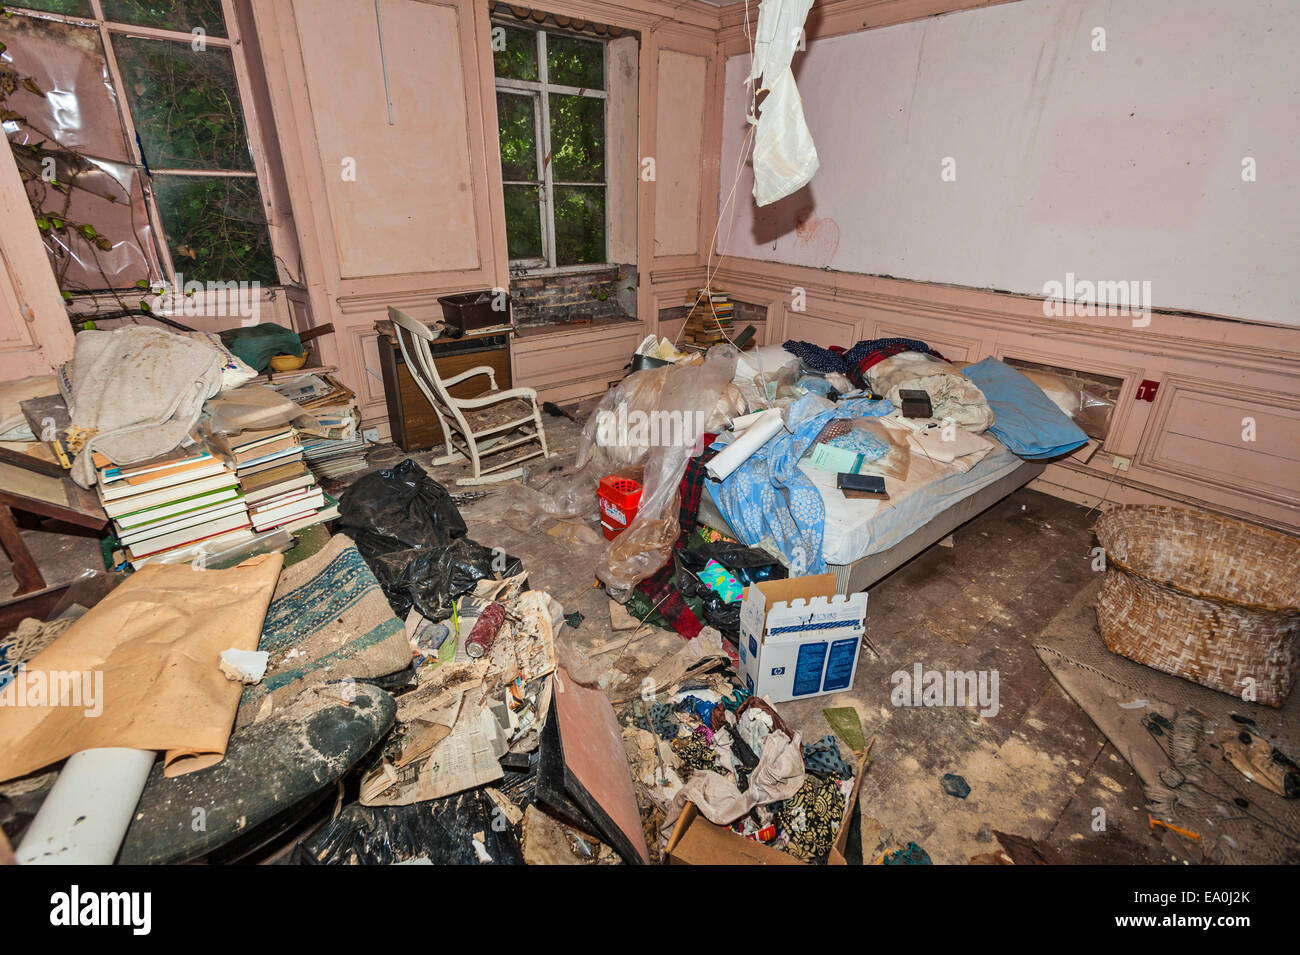 A chaotic bedroom room, filled with junk, in an abandoned house - Stock Image